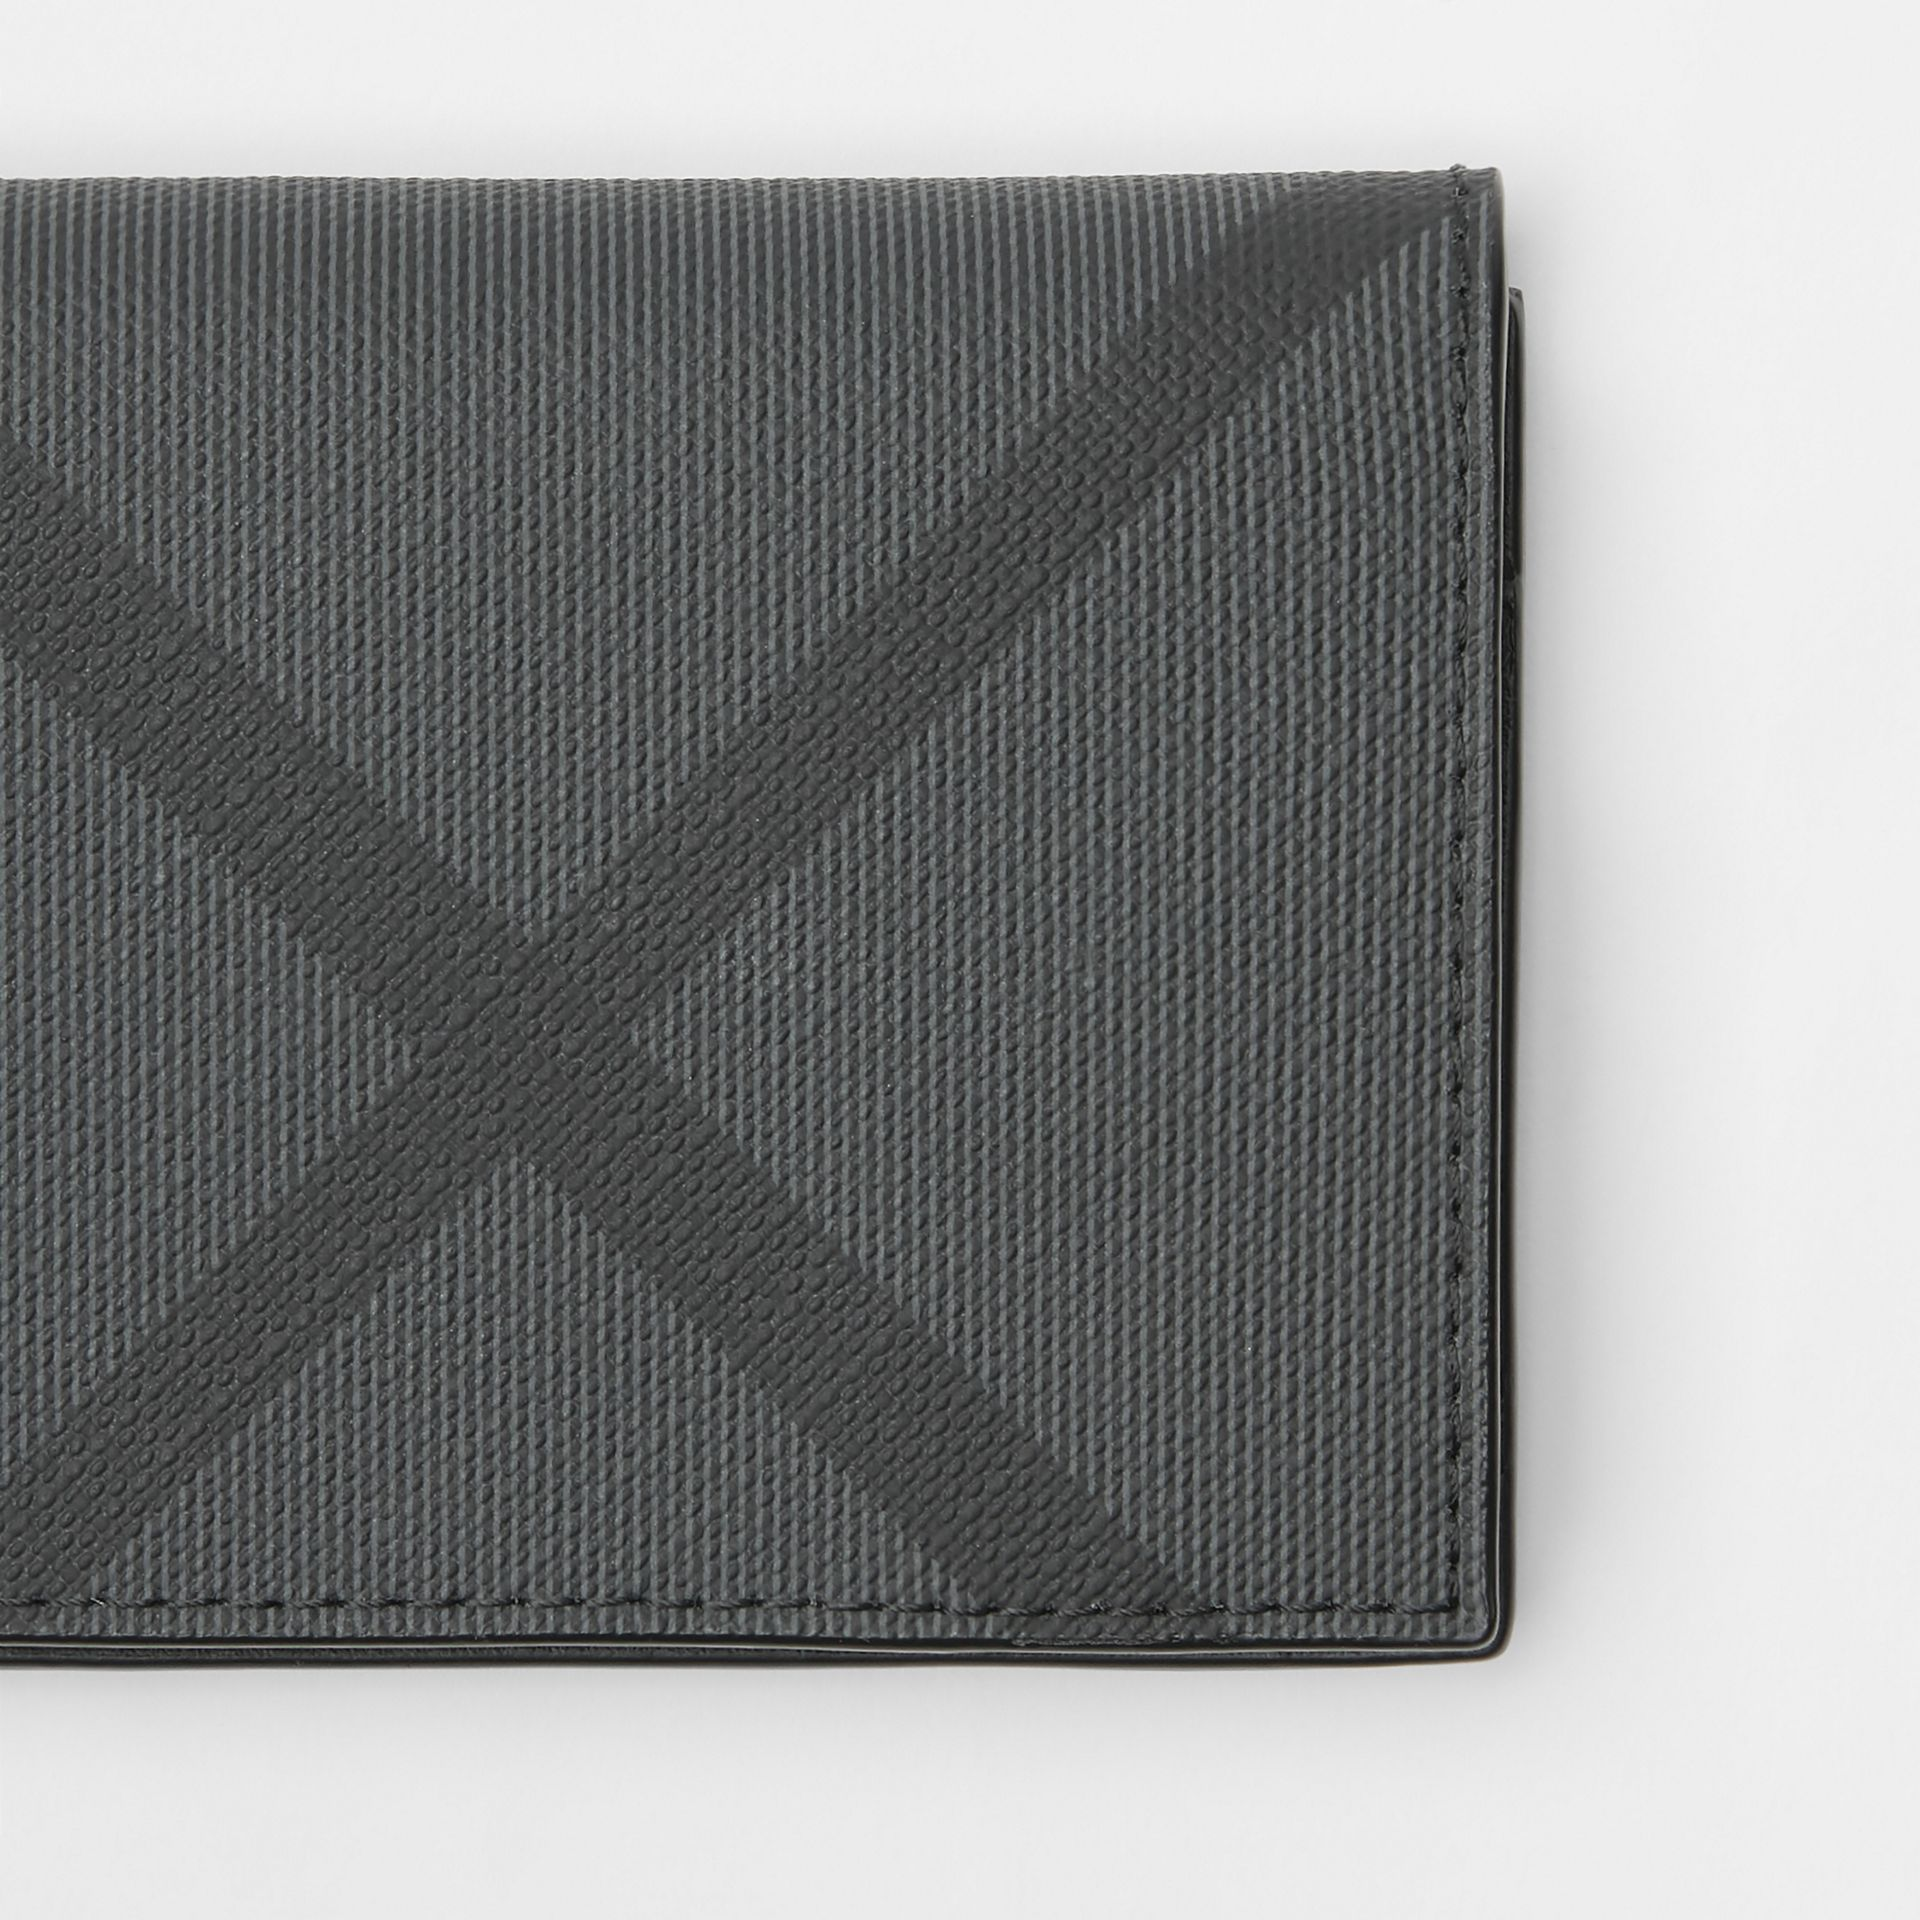 London Check and Leather Folding Card Case in Charcoal/black - Men | Burberry United Kingdom - gallery image 1